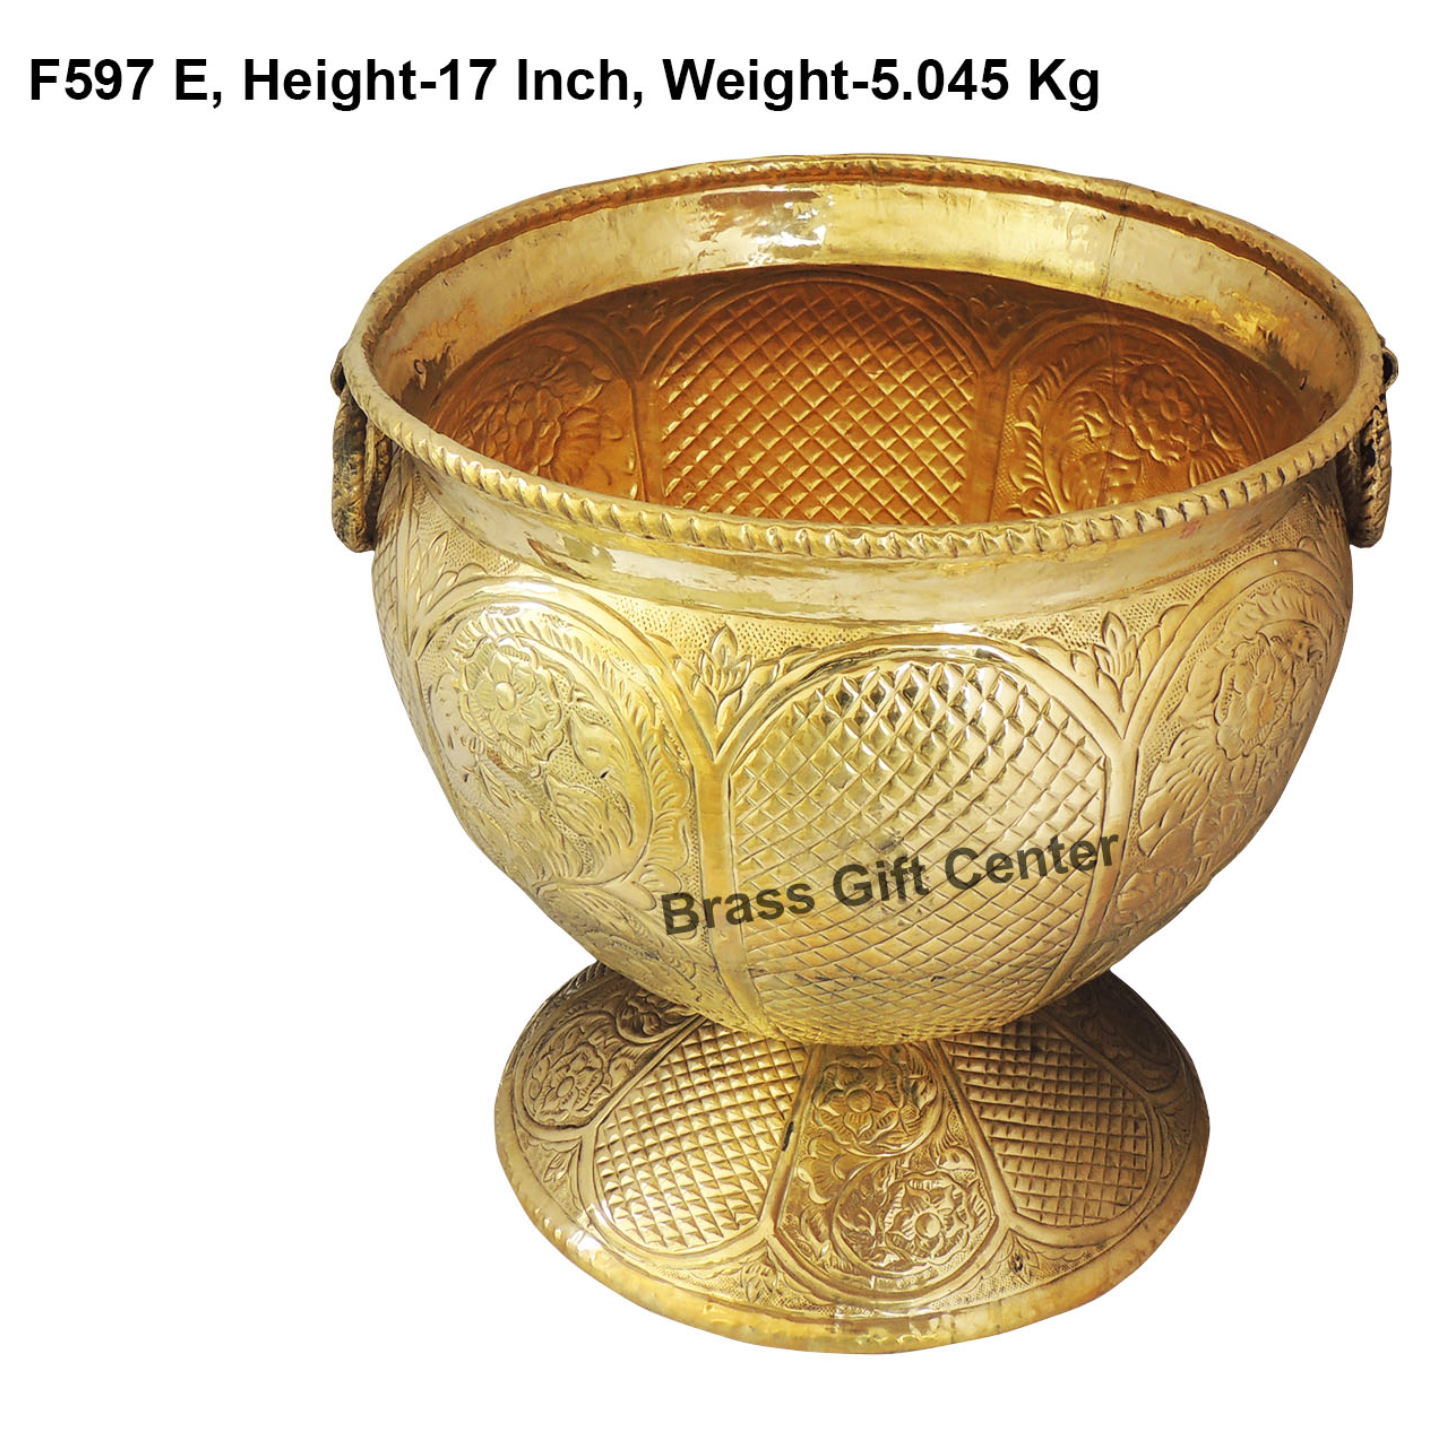 Brass Panter with Base - 171717 inch F597 E